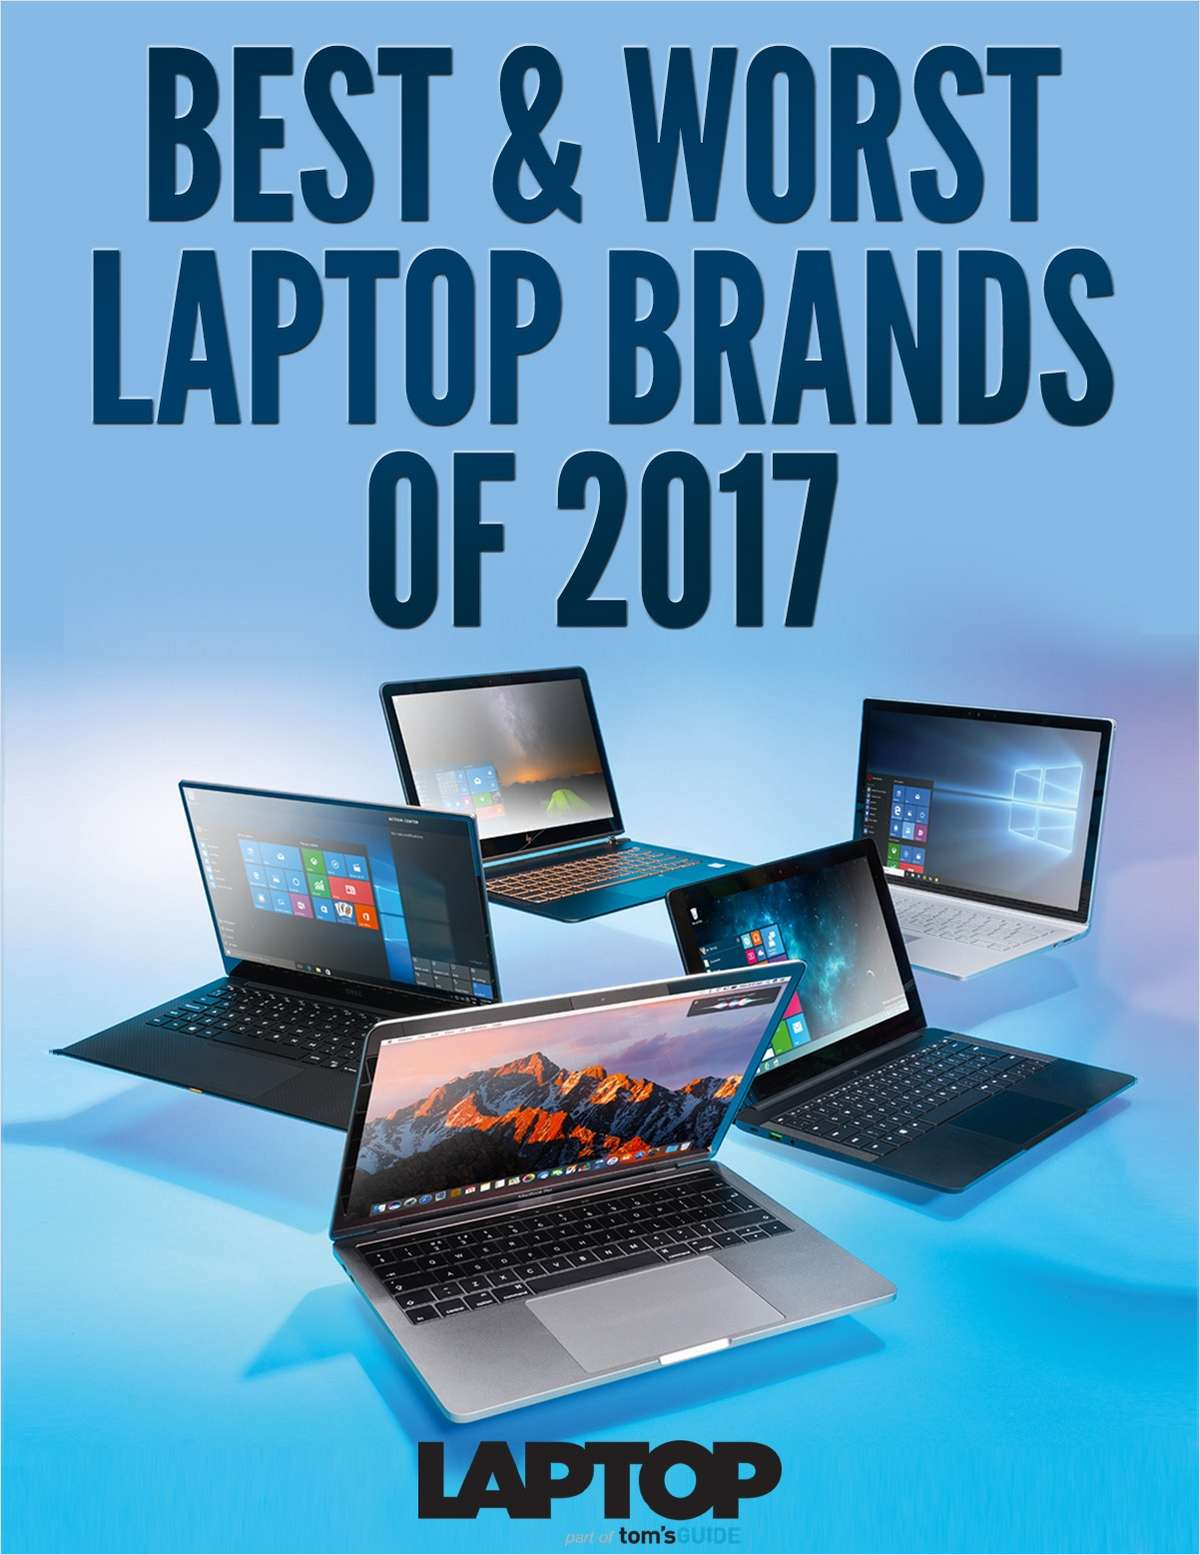 Best & Worst Laptop Brands of 2017